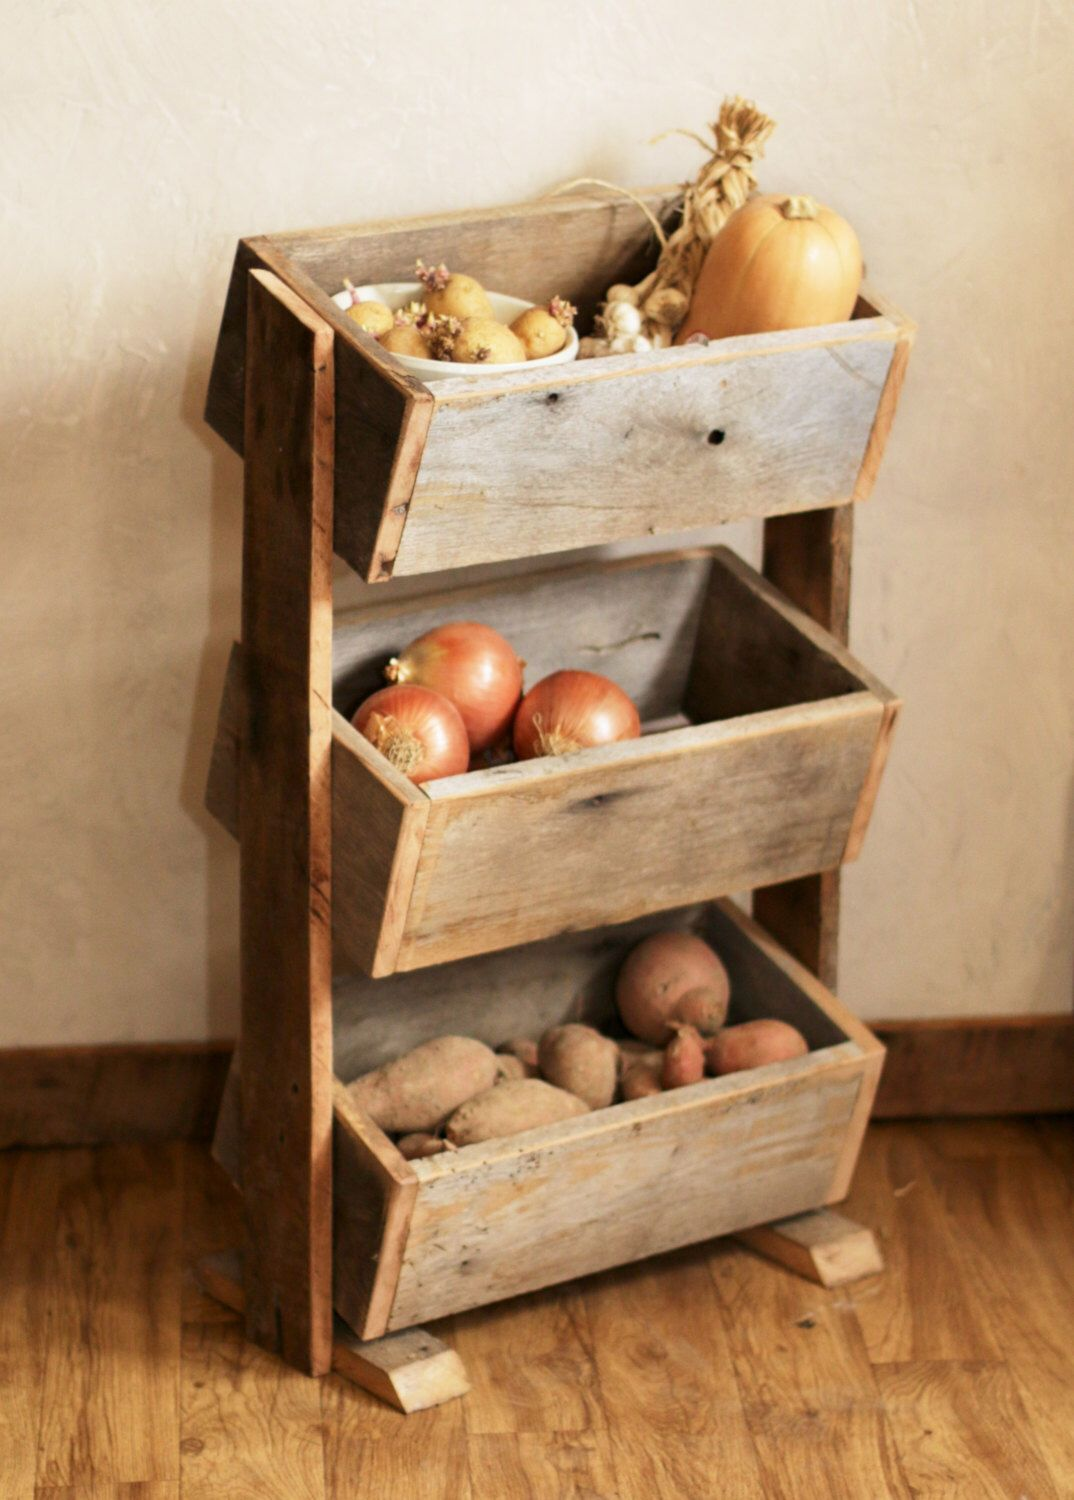 Potato bin vegetable barn wood rustic kitchen